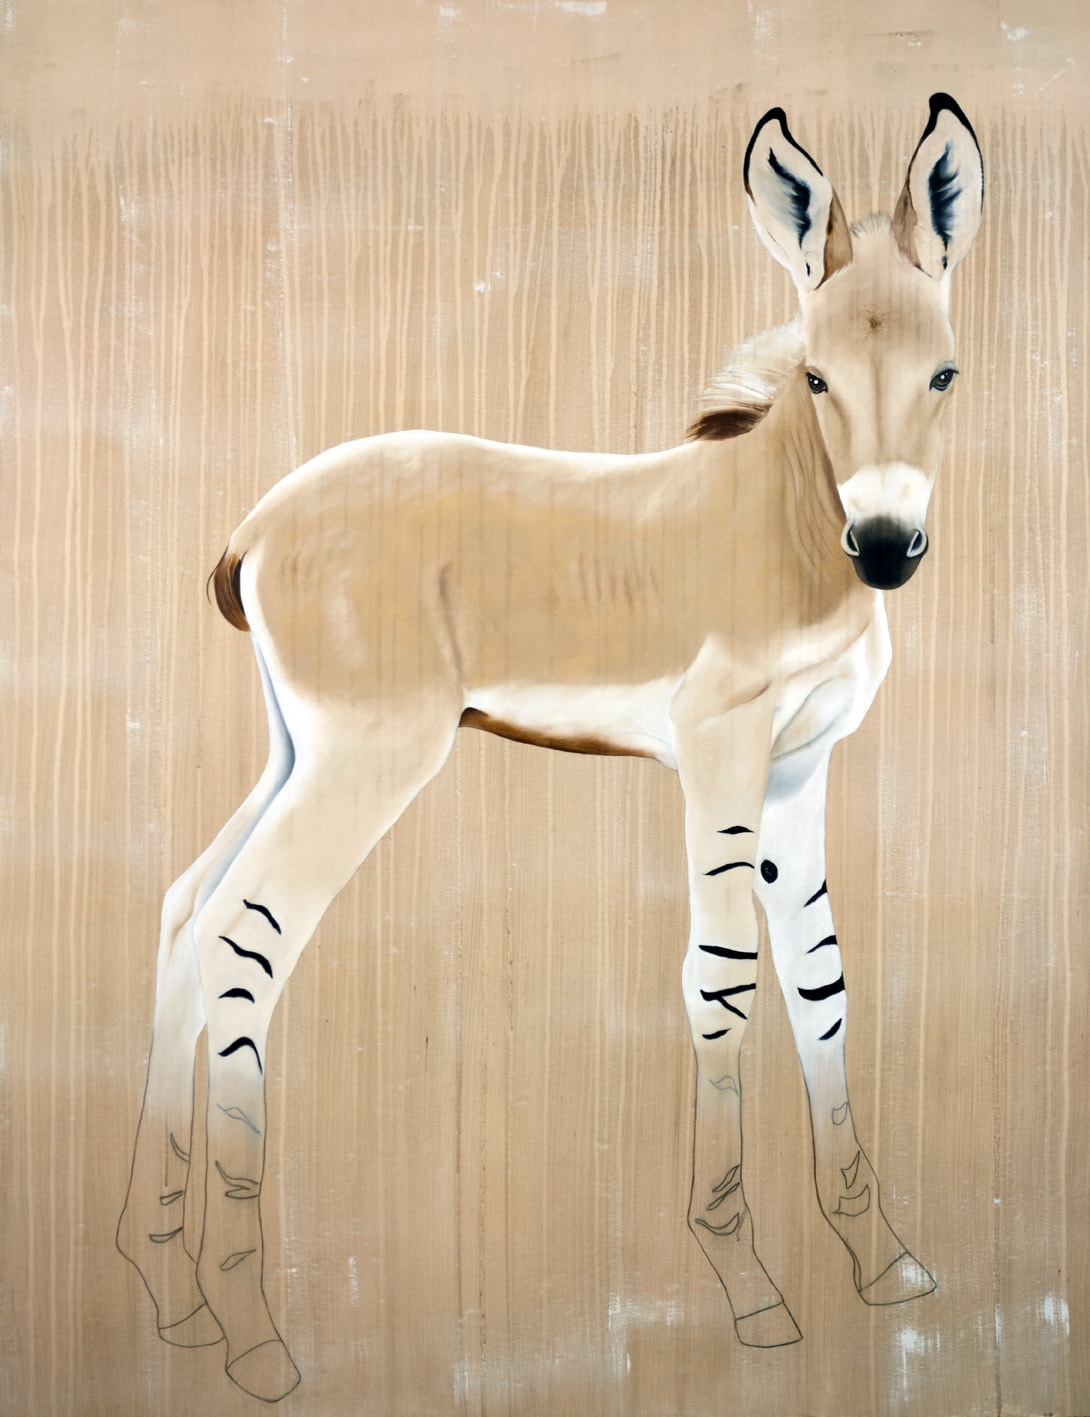 EQUUS ASINUS AFRICANUS divers Thierry Bisch painter animals painting art decoration hotel design interior luxury nature biodiversity conservation